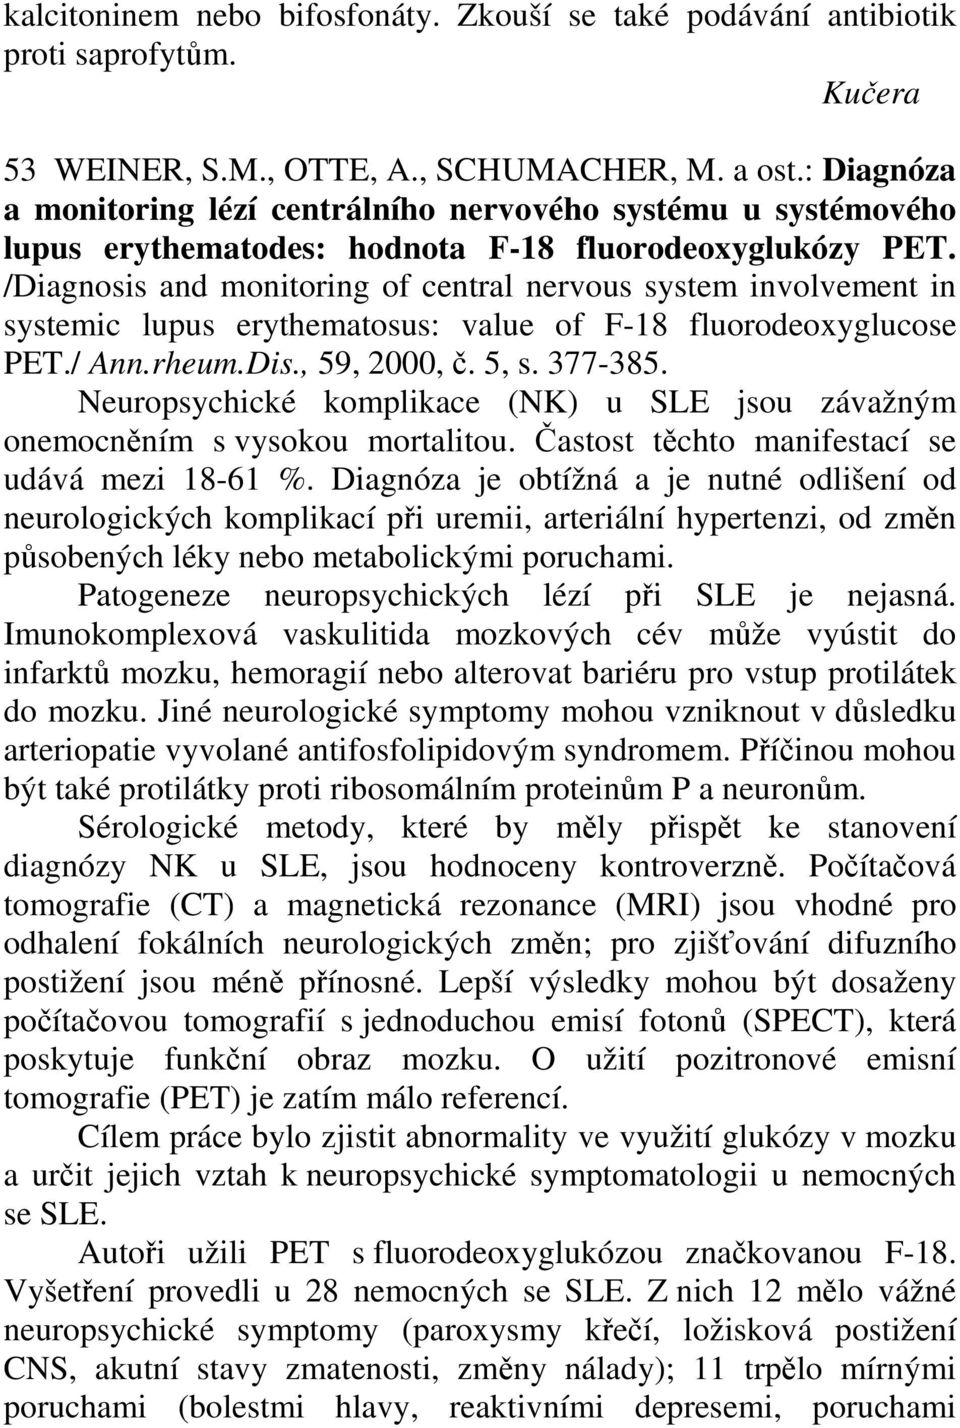 /Diagnosis and monitoring of central nervous system involvement in systemic lupus erythematosus: value of F-18 fluorodeoxyglucose PET./ Ann.rheum.Dis., 59, 2000, č. 5, s. 377-385.